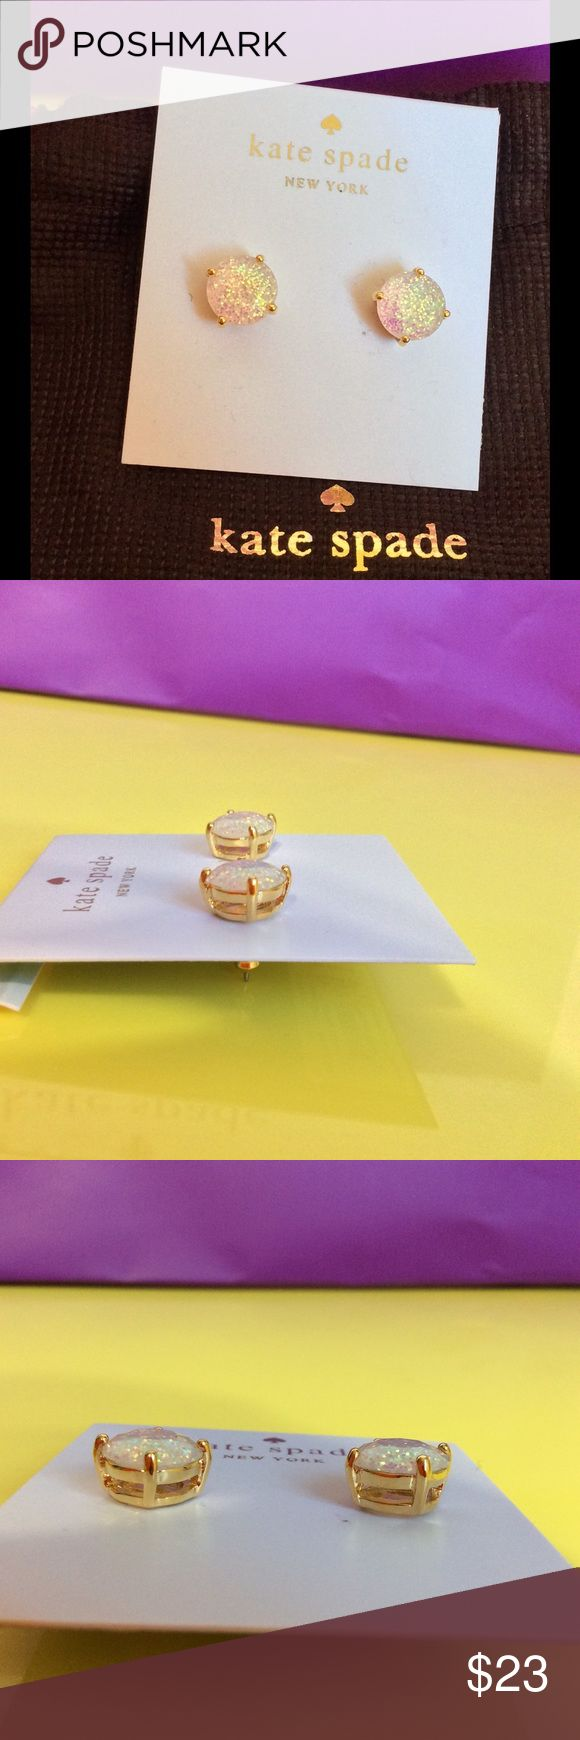 Brand New Kate Spade Glitter Opal Stud Earrings Brand New with tag and pouch. Price firm. kate spade Jewelry Earrings